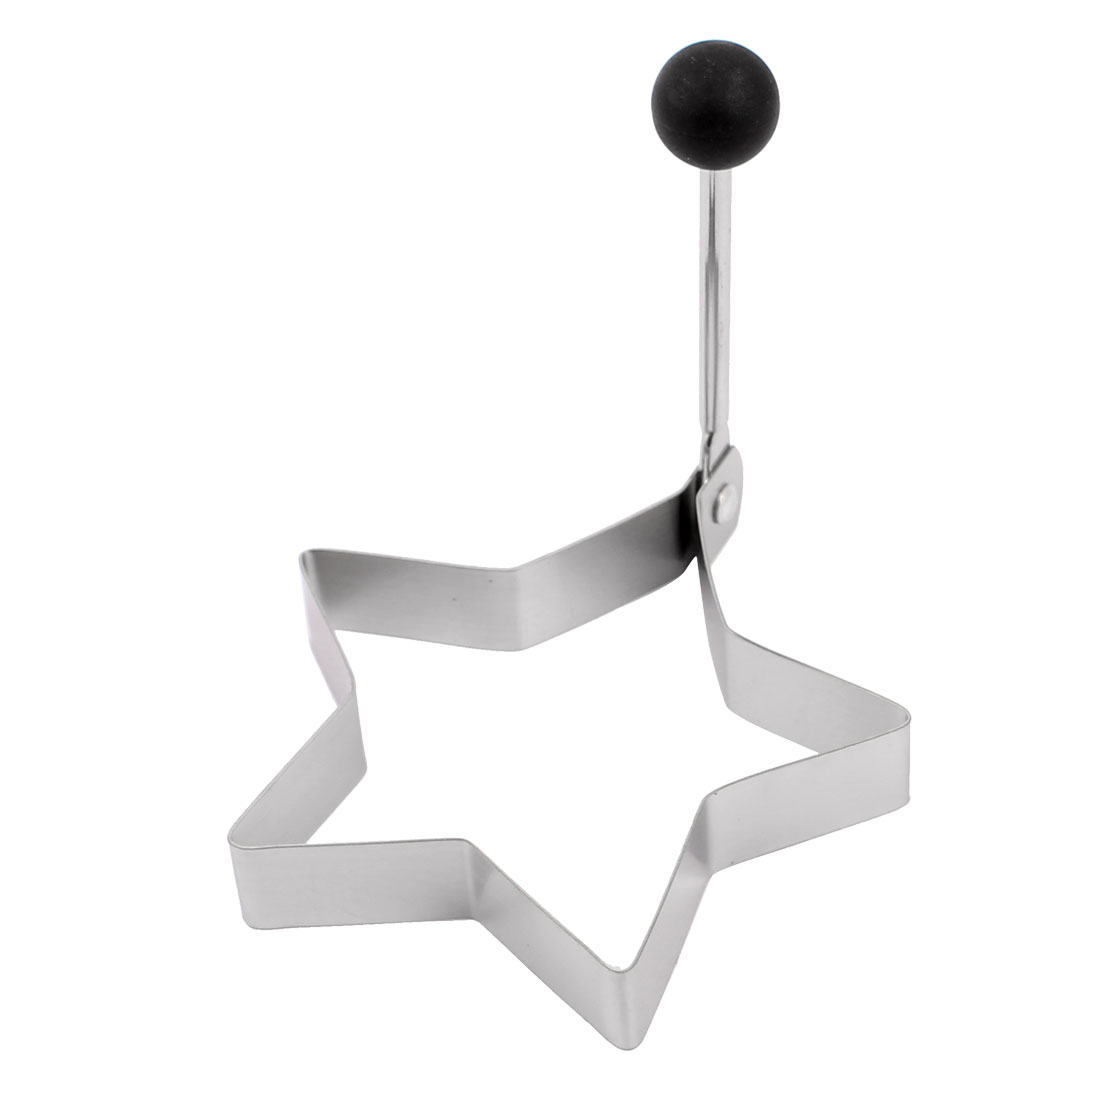 Stainless Steel Home Folding Handle Star Shaped Frying Egg Mold Ring Silver Tone Black